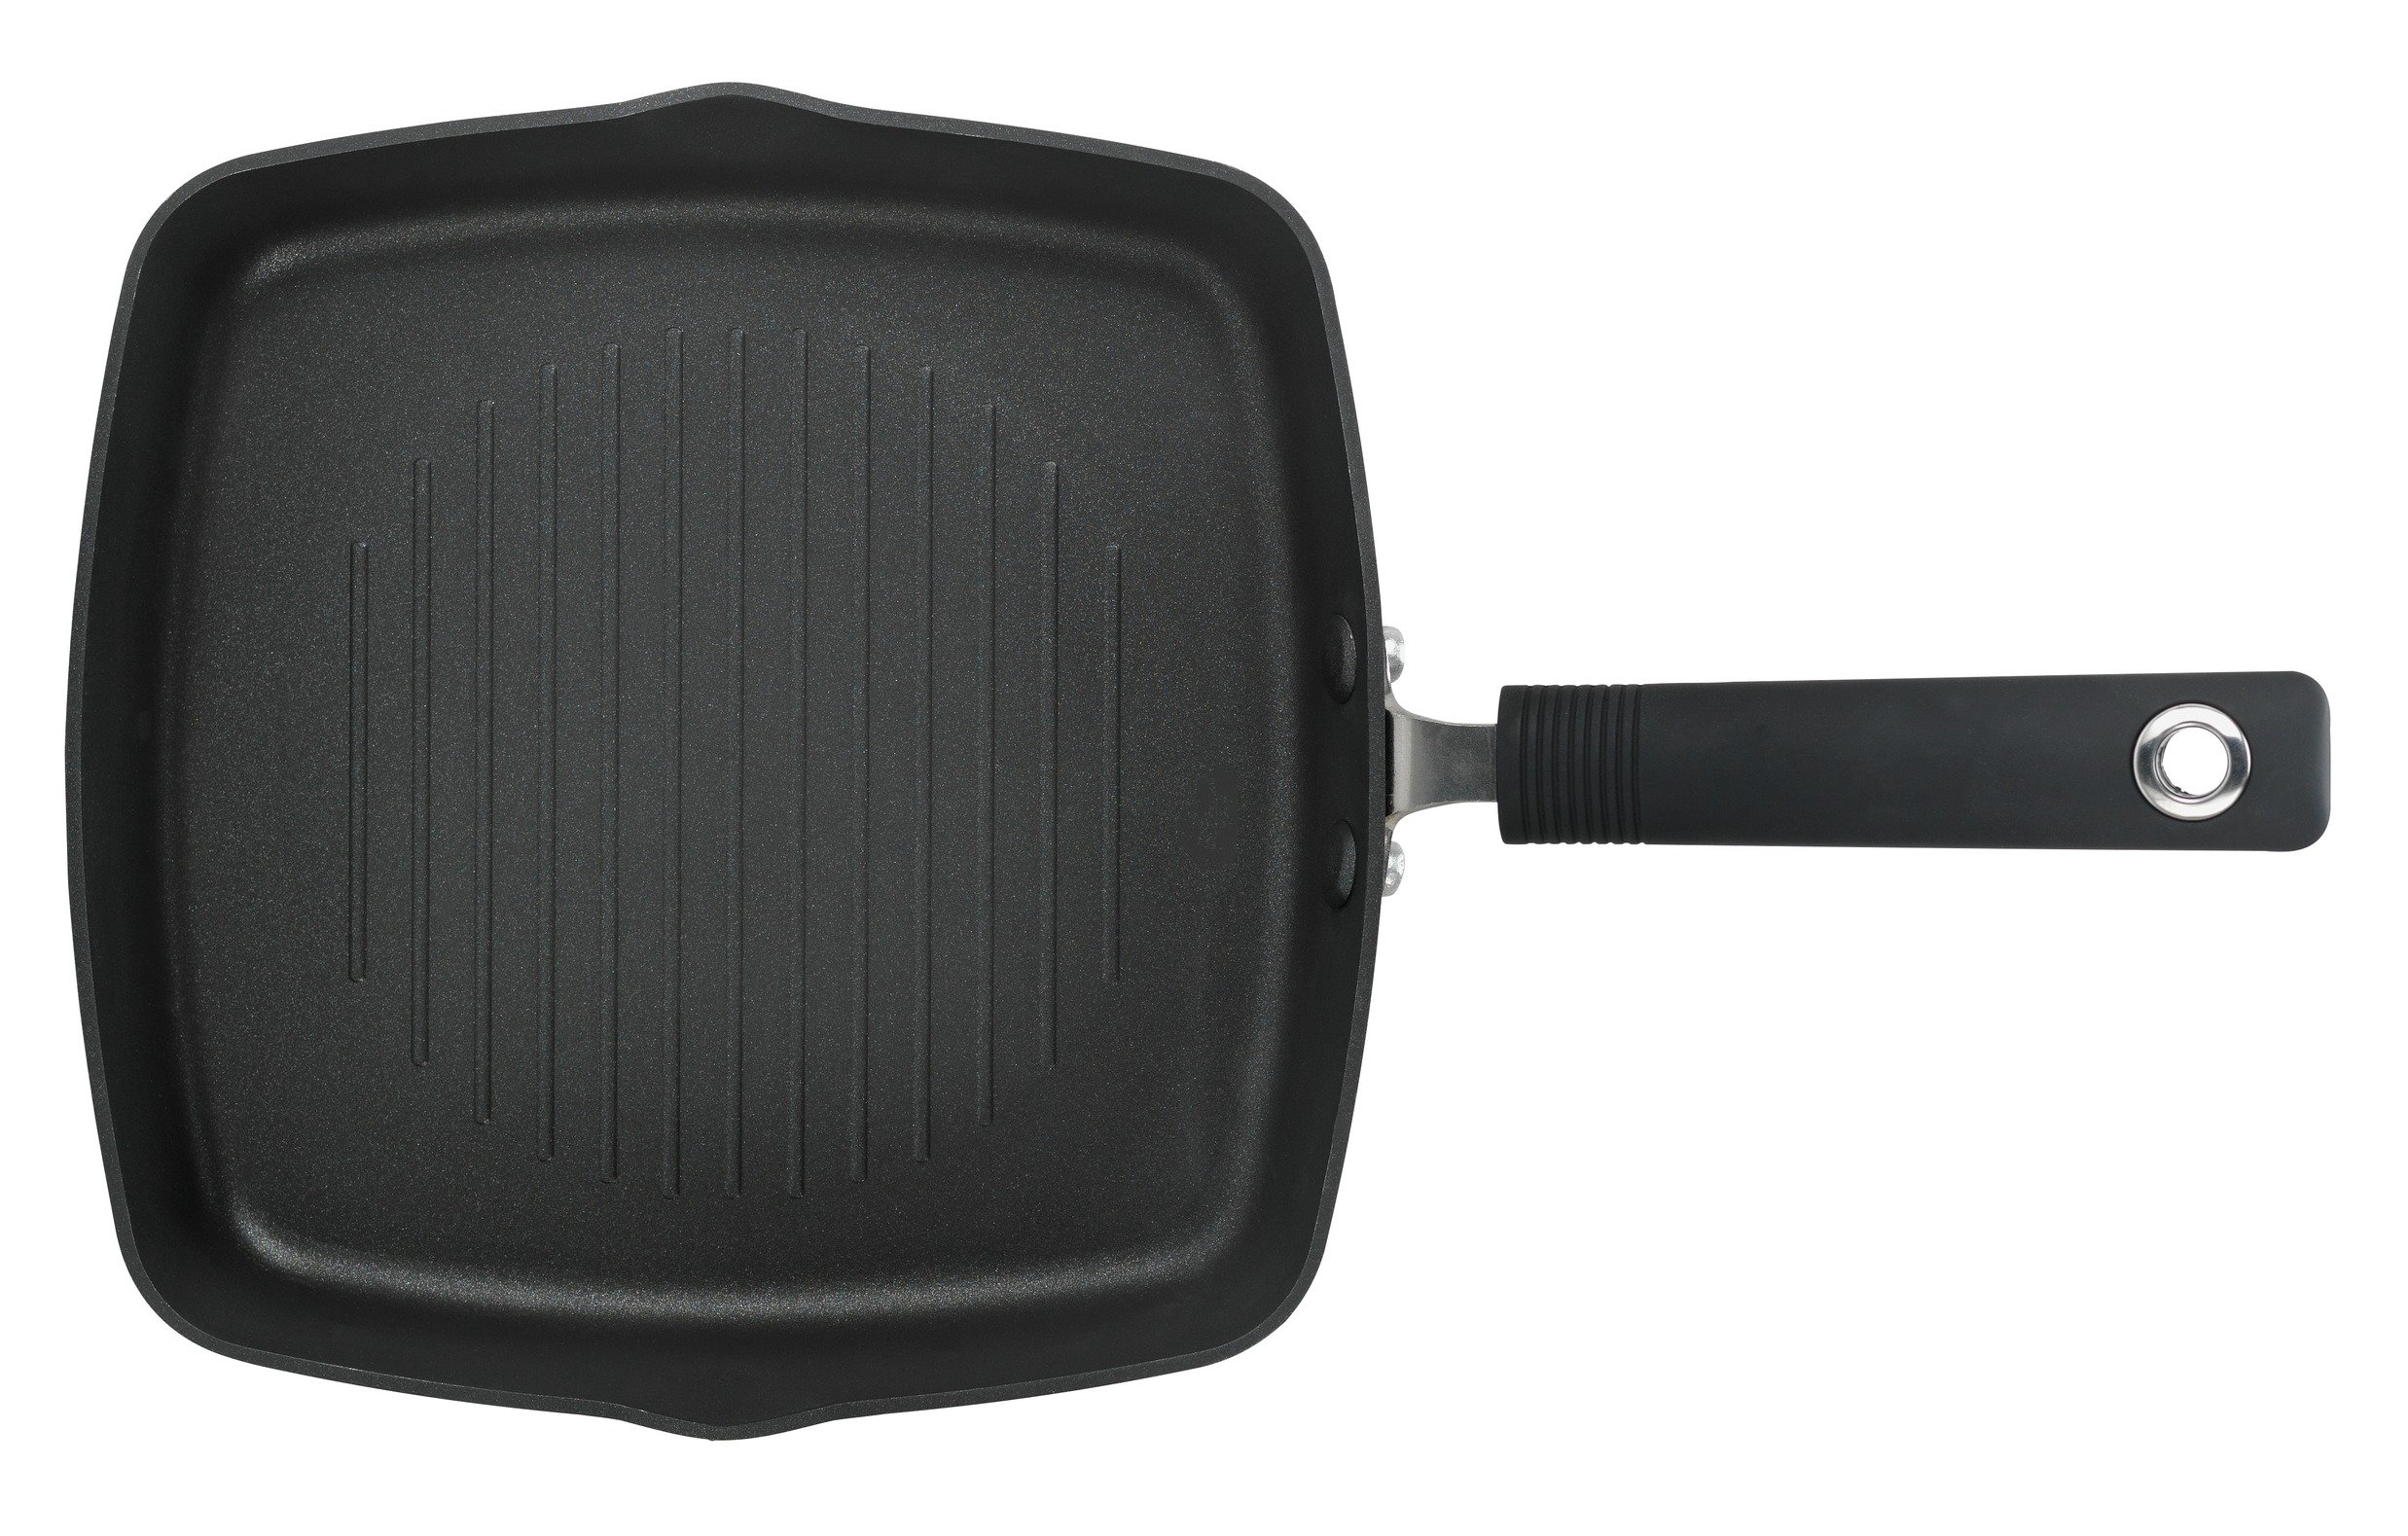 salter pan for life griddle pan. Black Bedroom Furniture Sets. Home Design Ideas